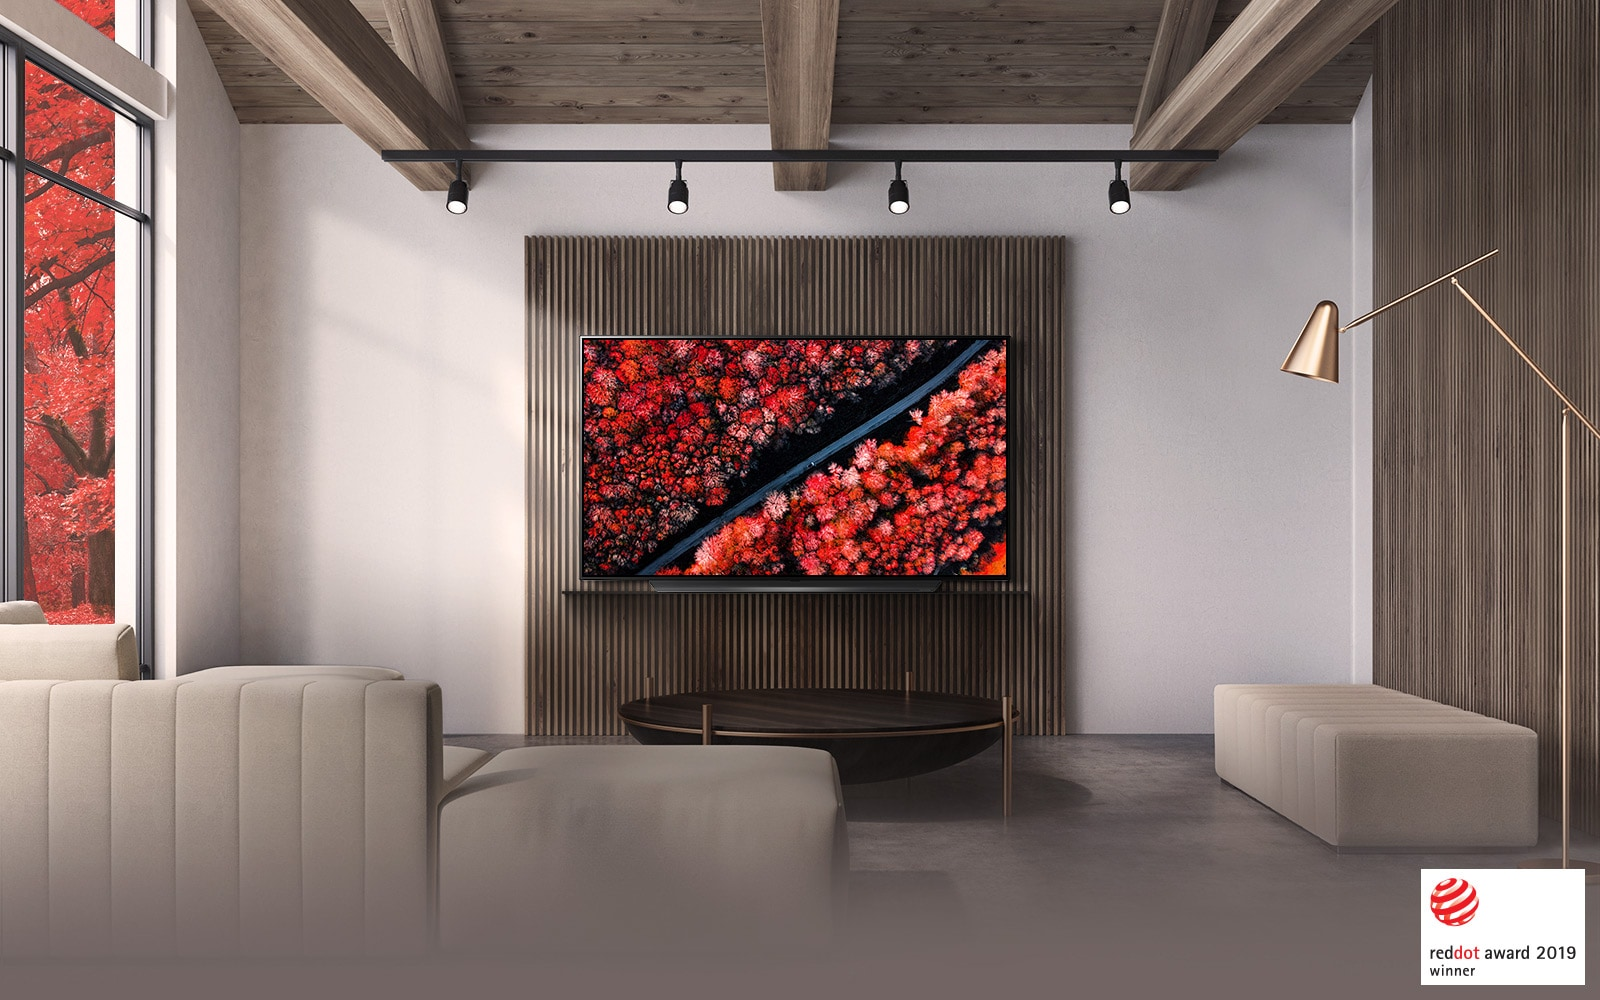 TV-OLED-C9-06-Design-Desktop